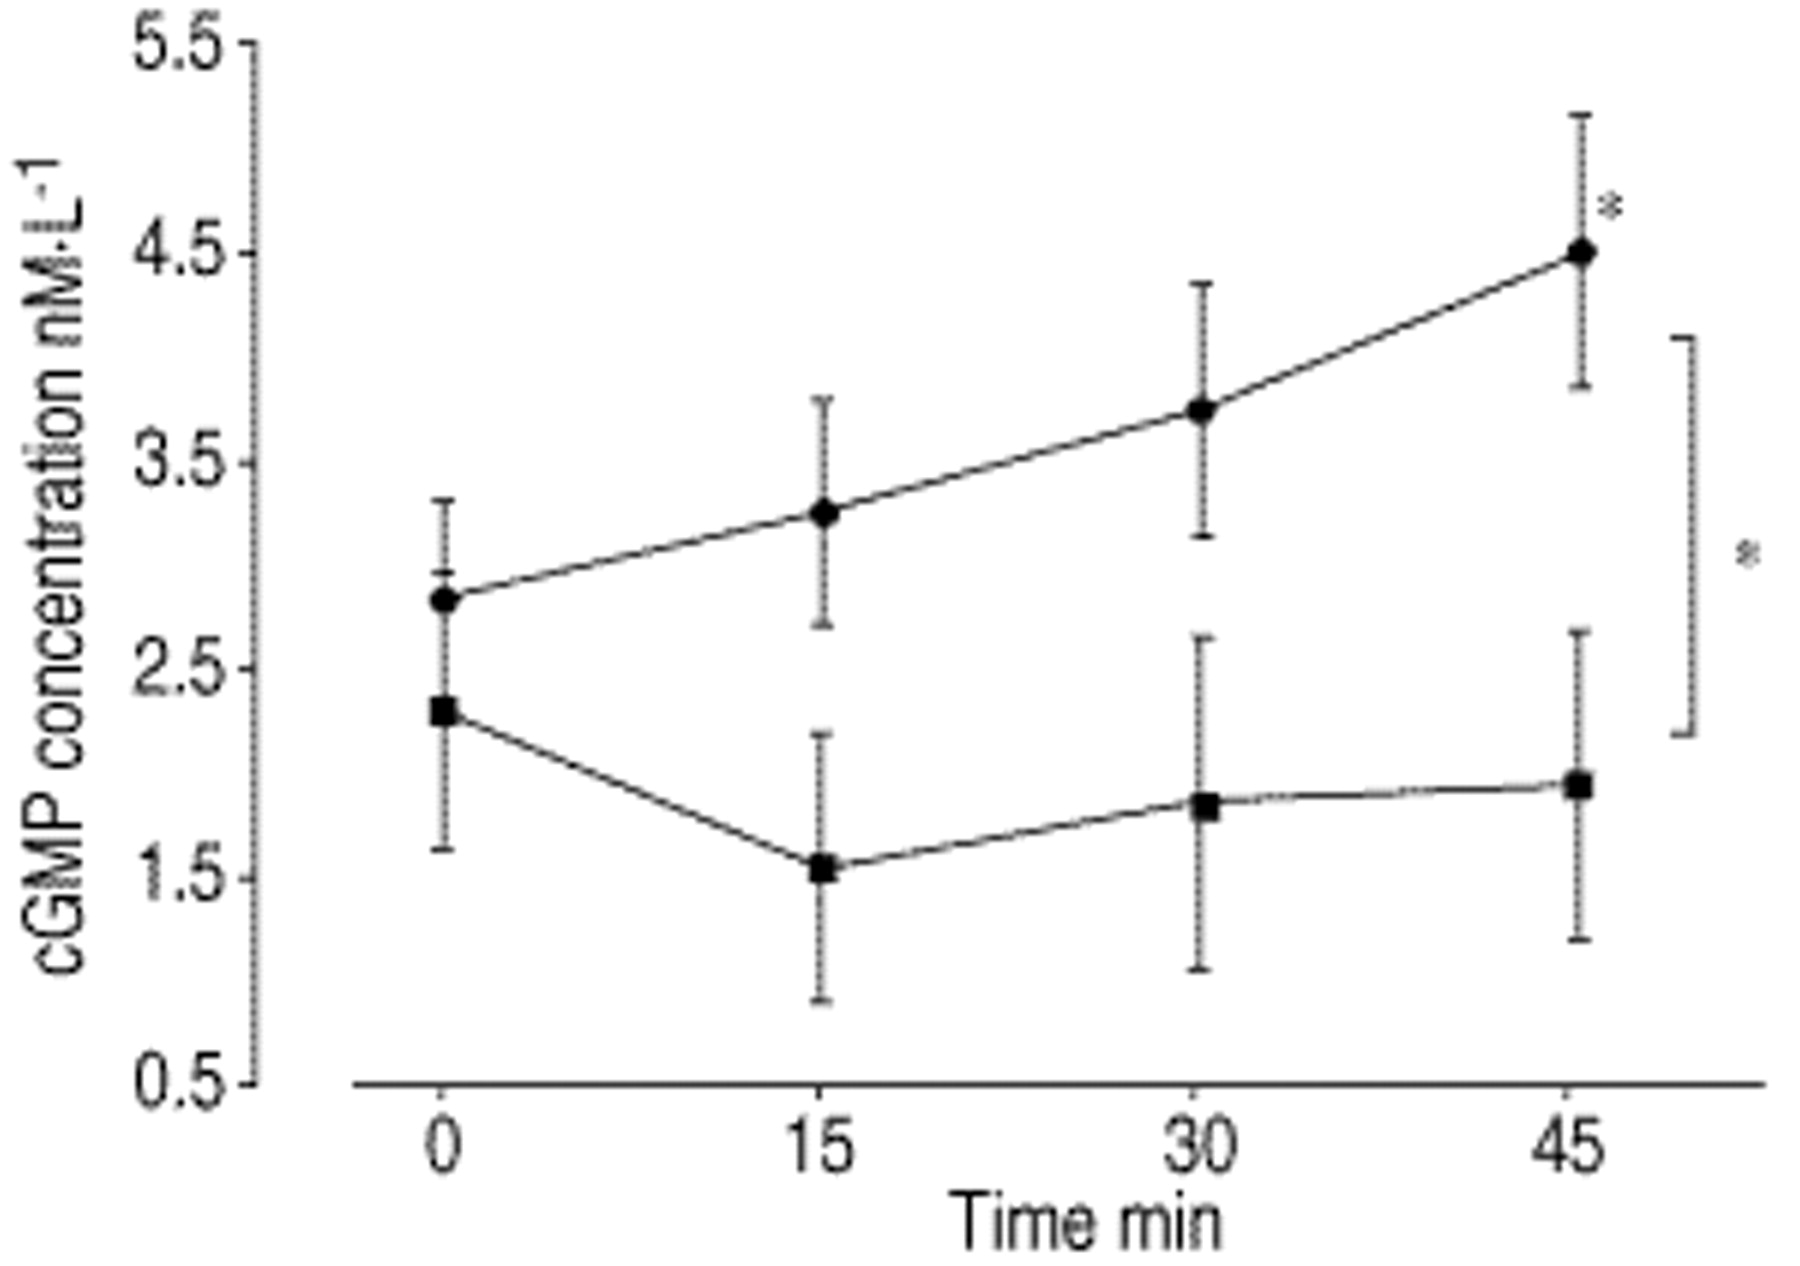 Response of nitric oxide pathway to l-arginine infusion at